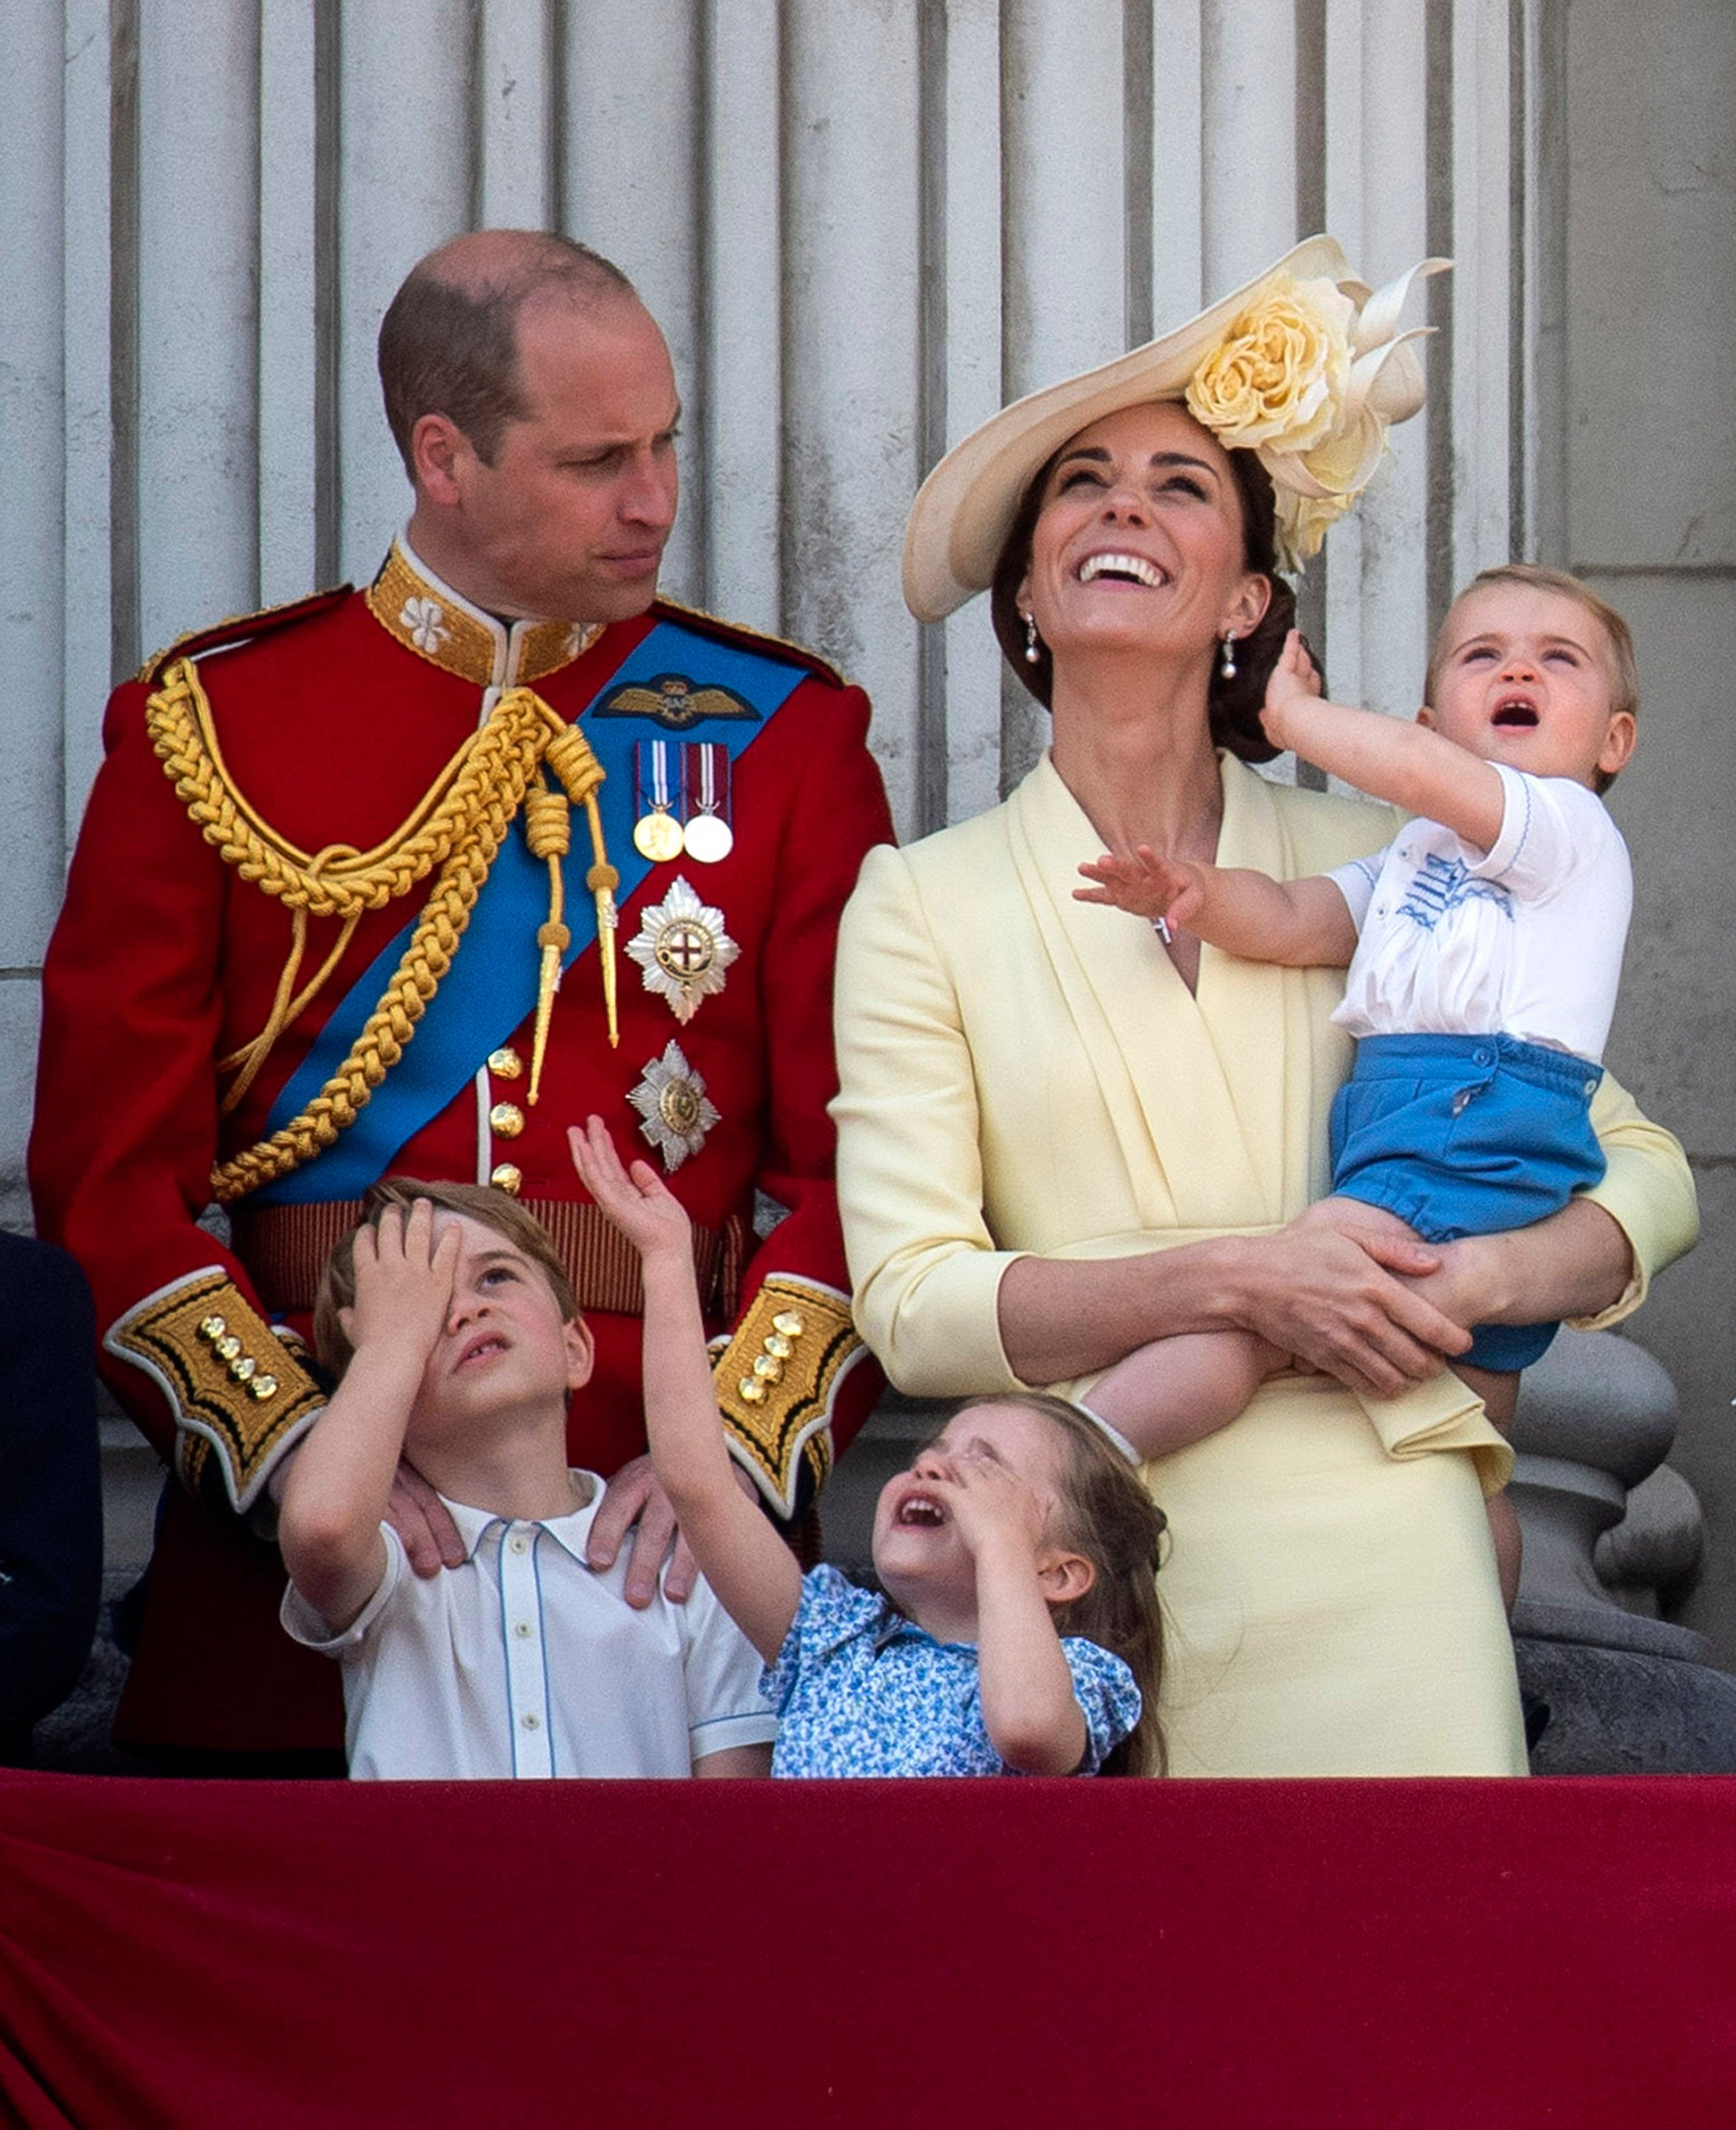 Kate Middleton And Prince William's Family Christmas Card Was Revealed Early